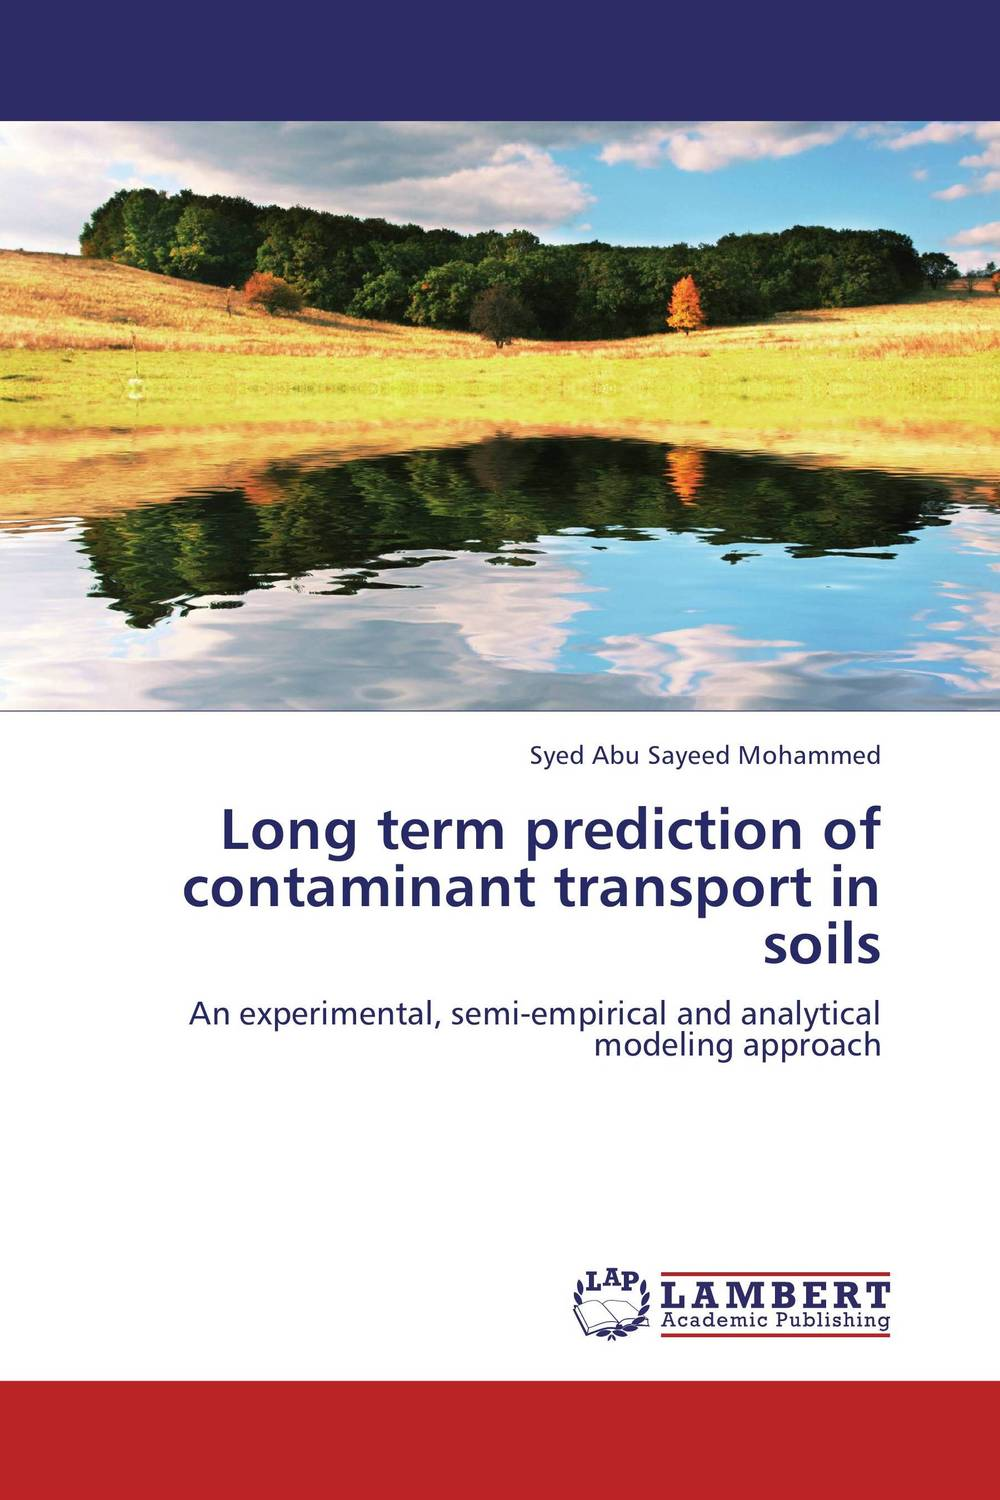 Long term prediction of contaminant transport in soils status of soils and water reservoirs near industrial areas of baroda